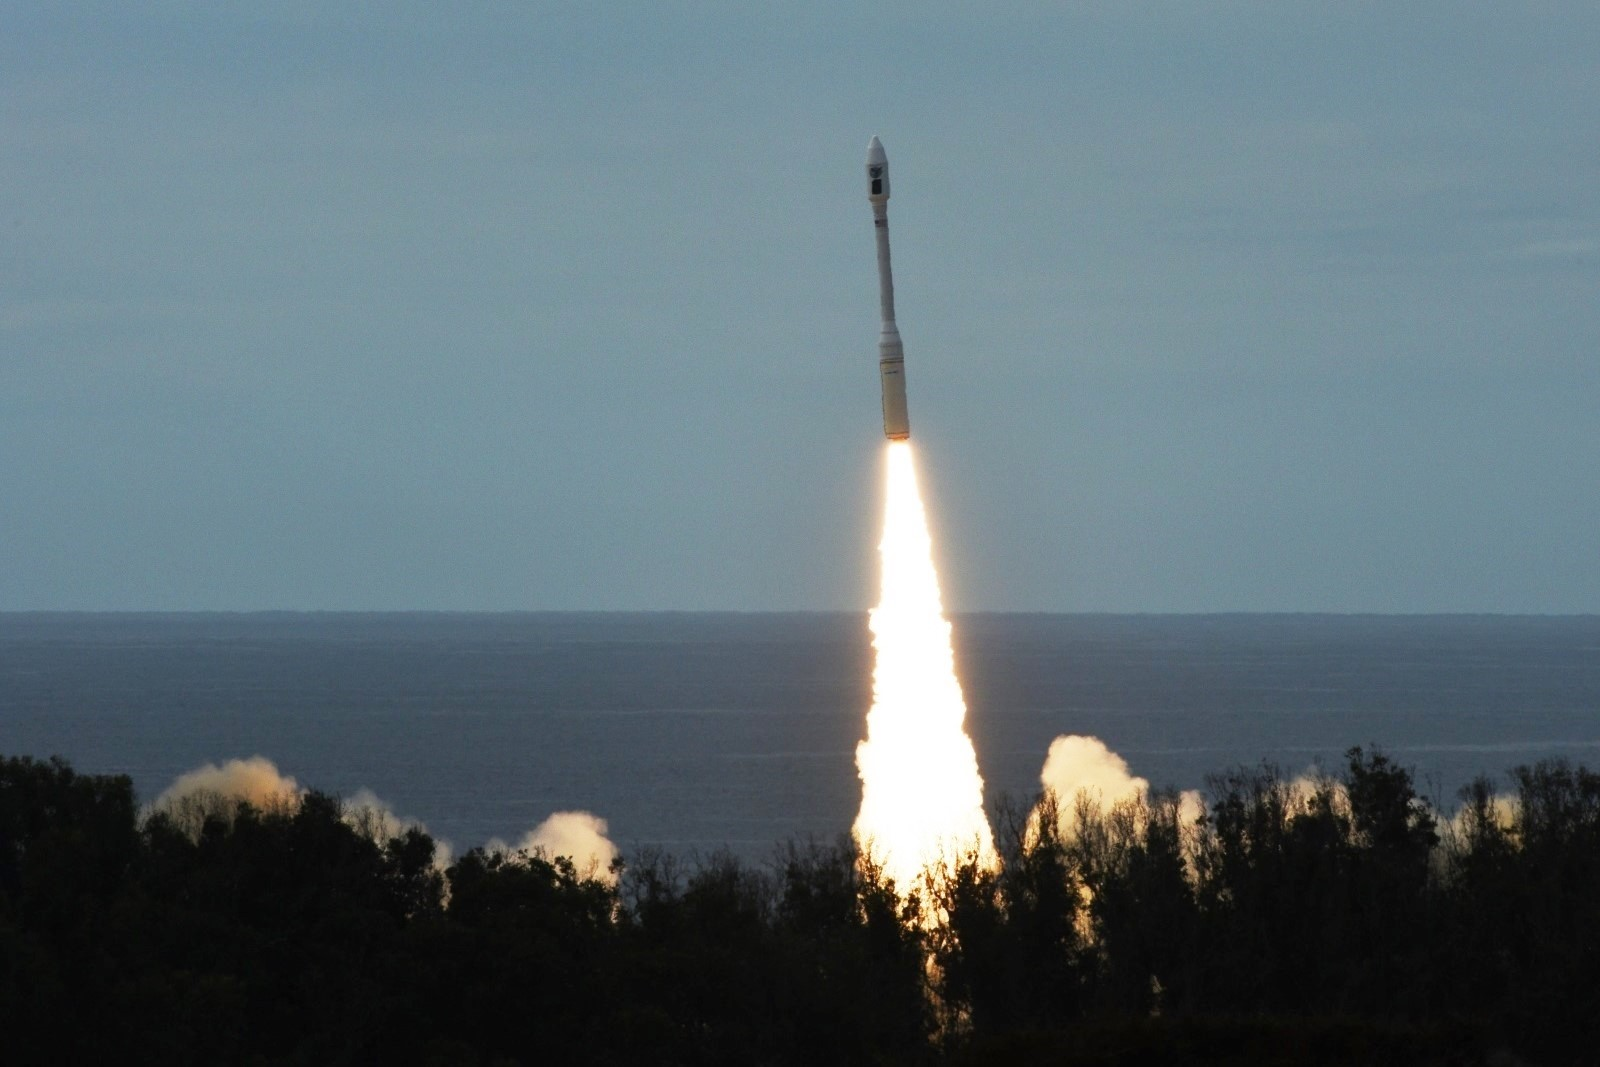 Launch of the Minotaur-C rocket with SkySat/Dove satellites